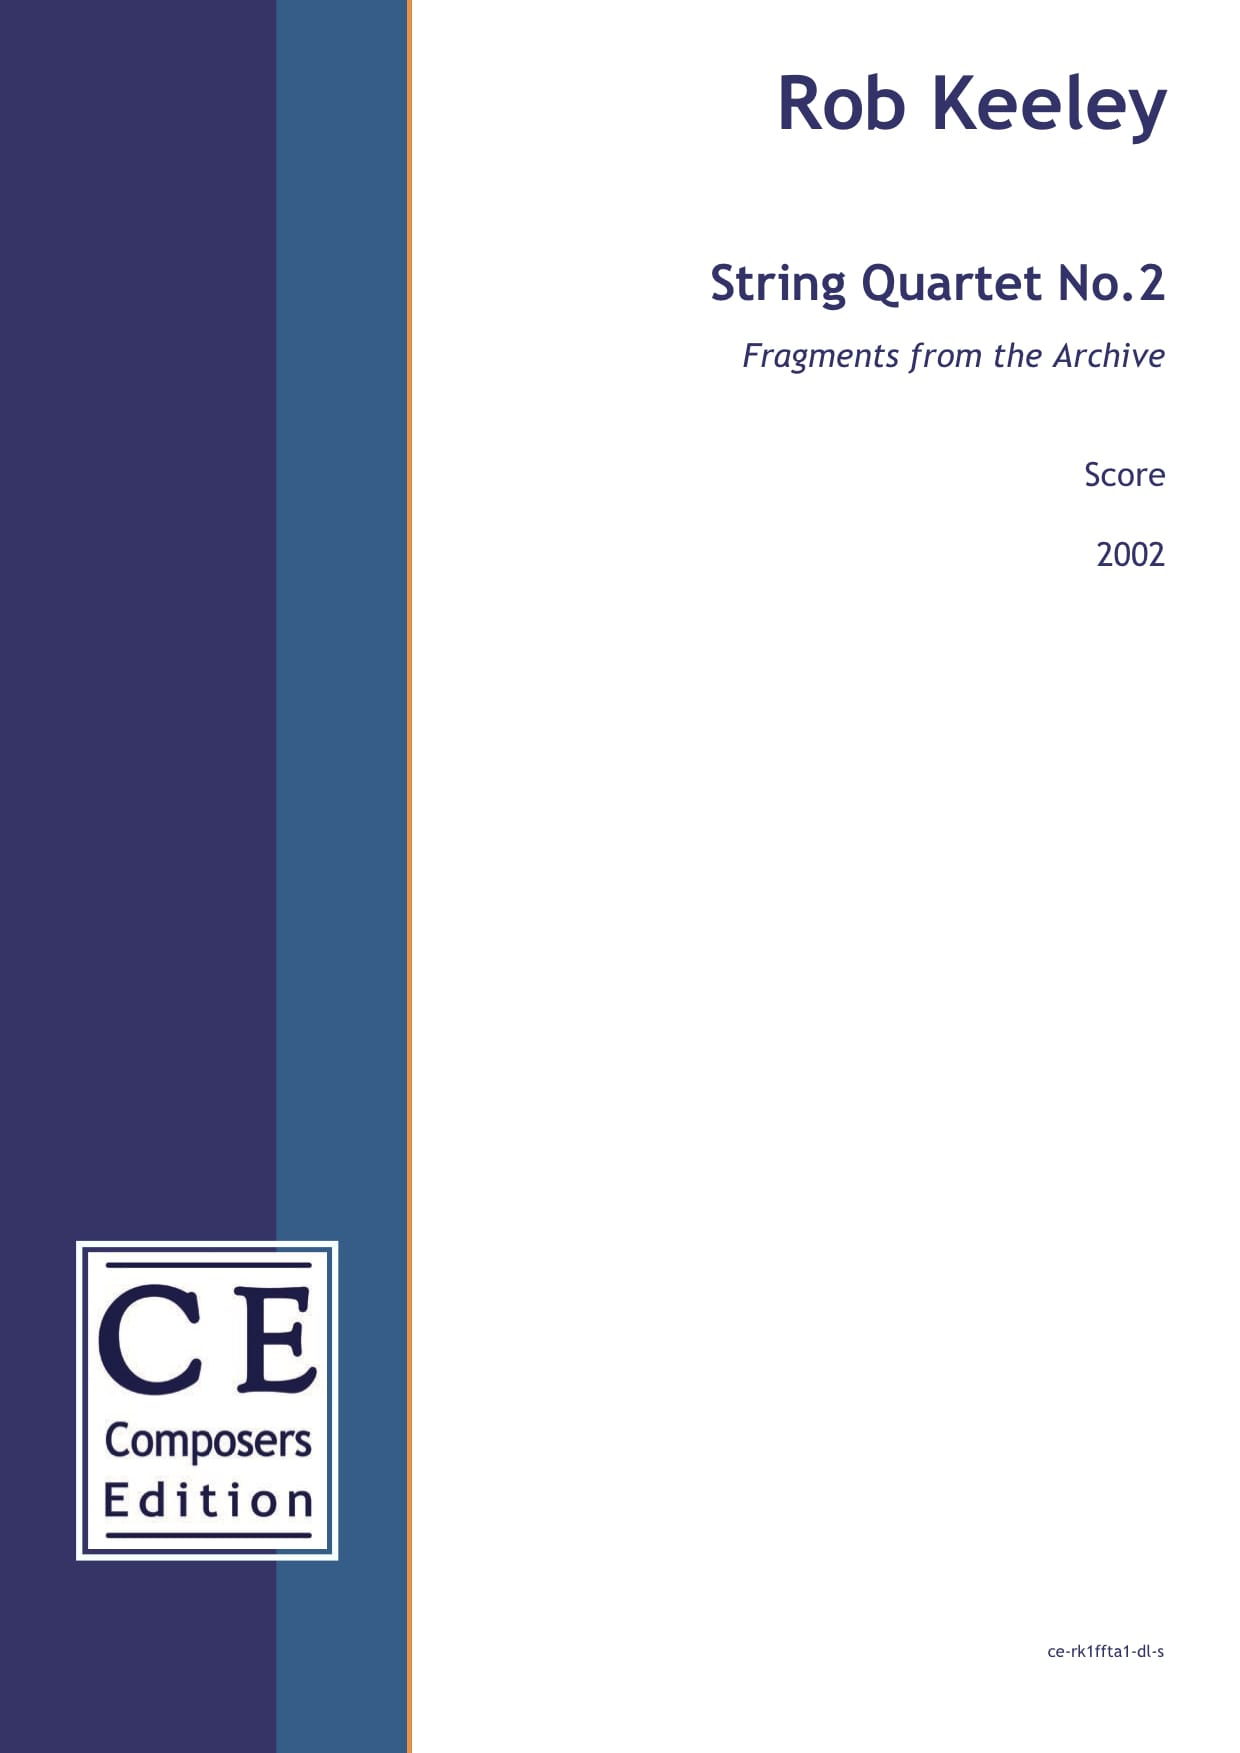 Rob Keeley: String Quartet No.2 Fragments from the Archive